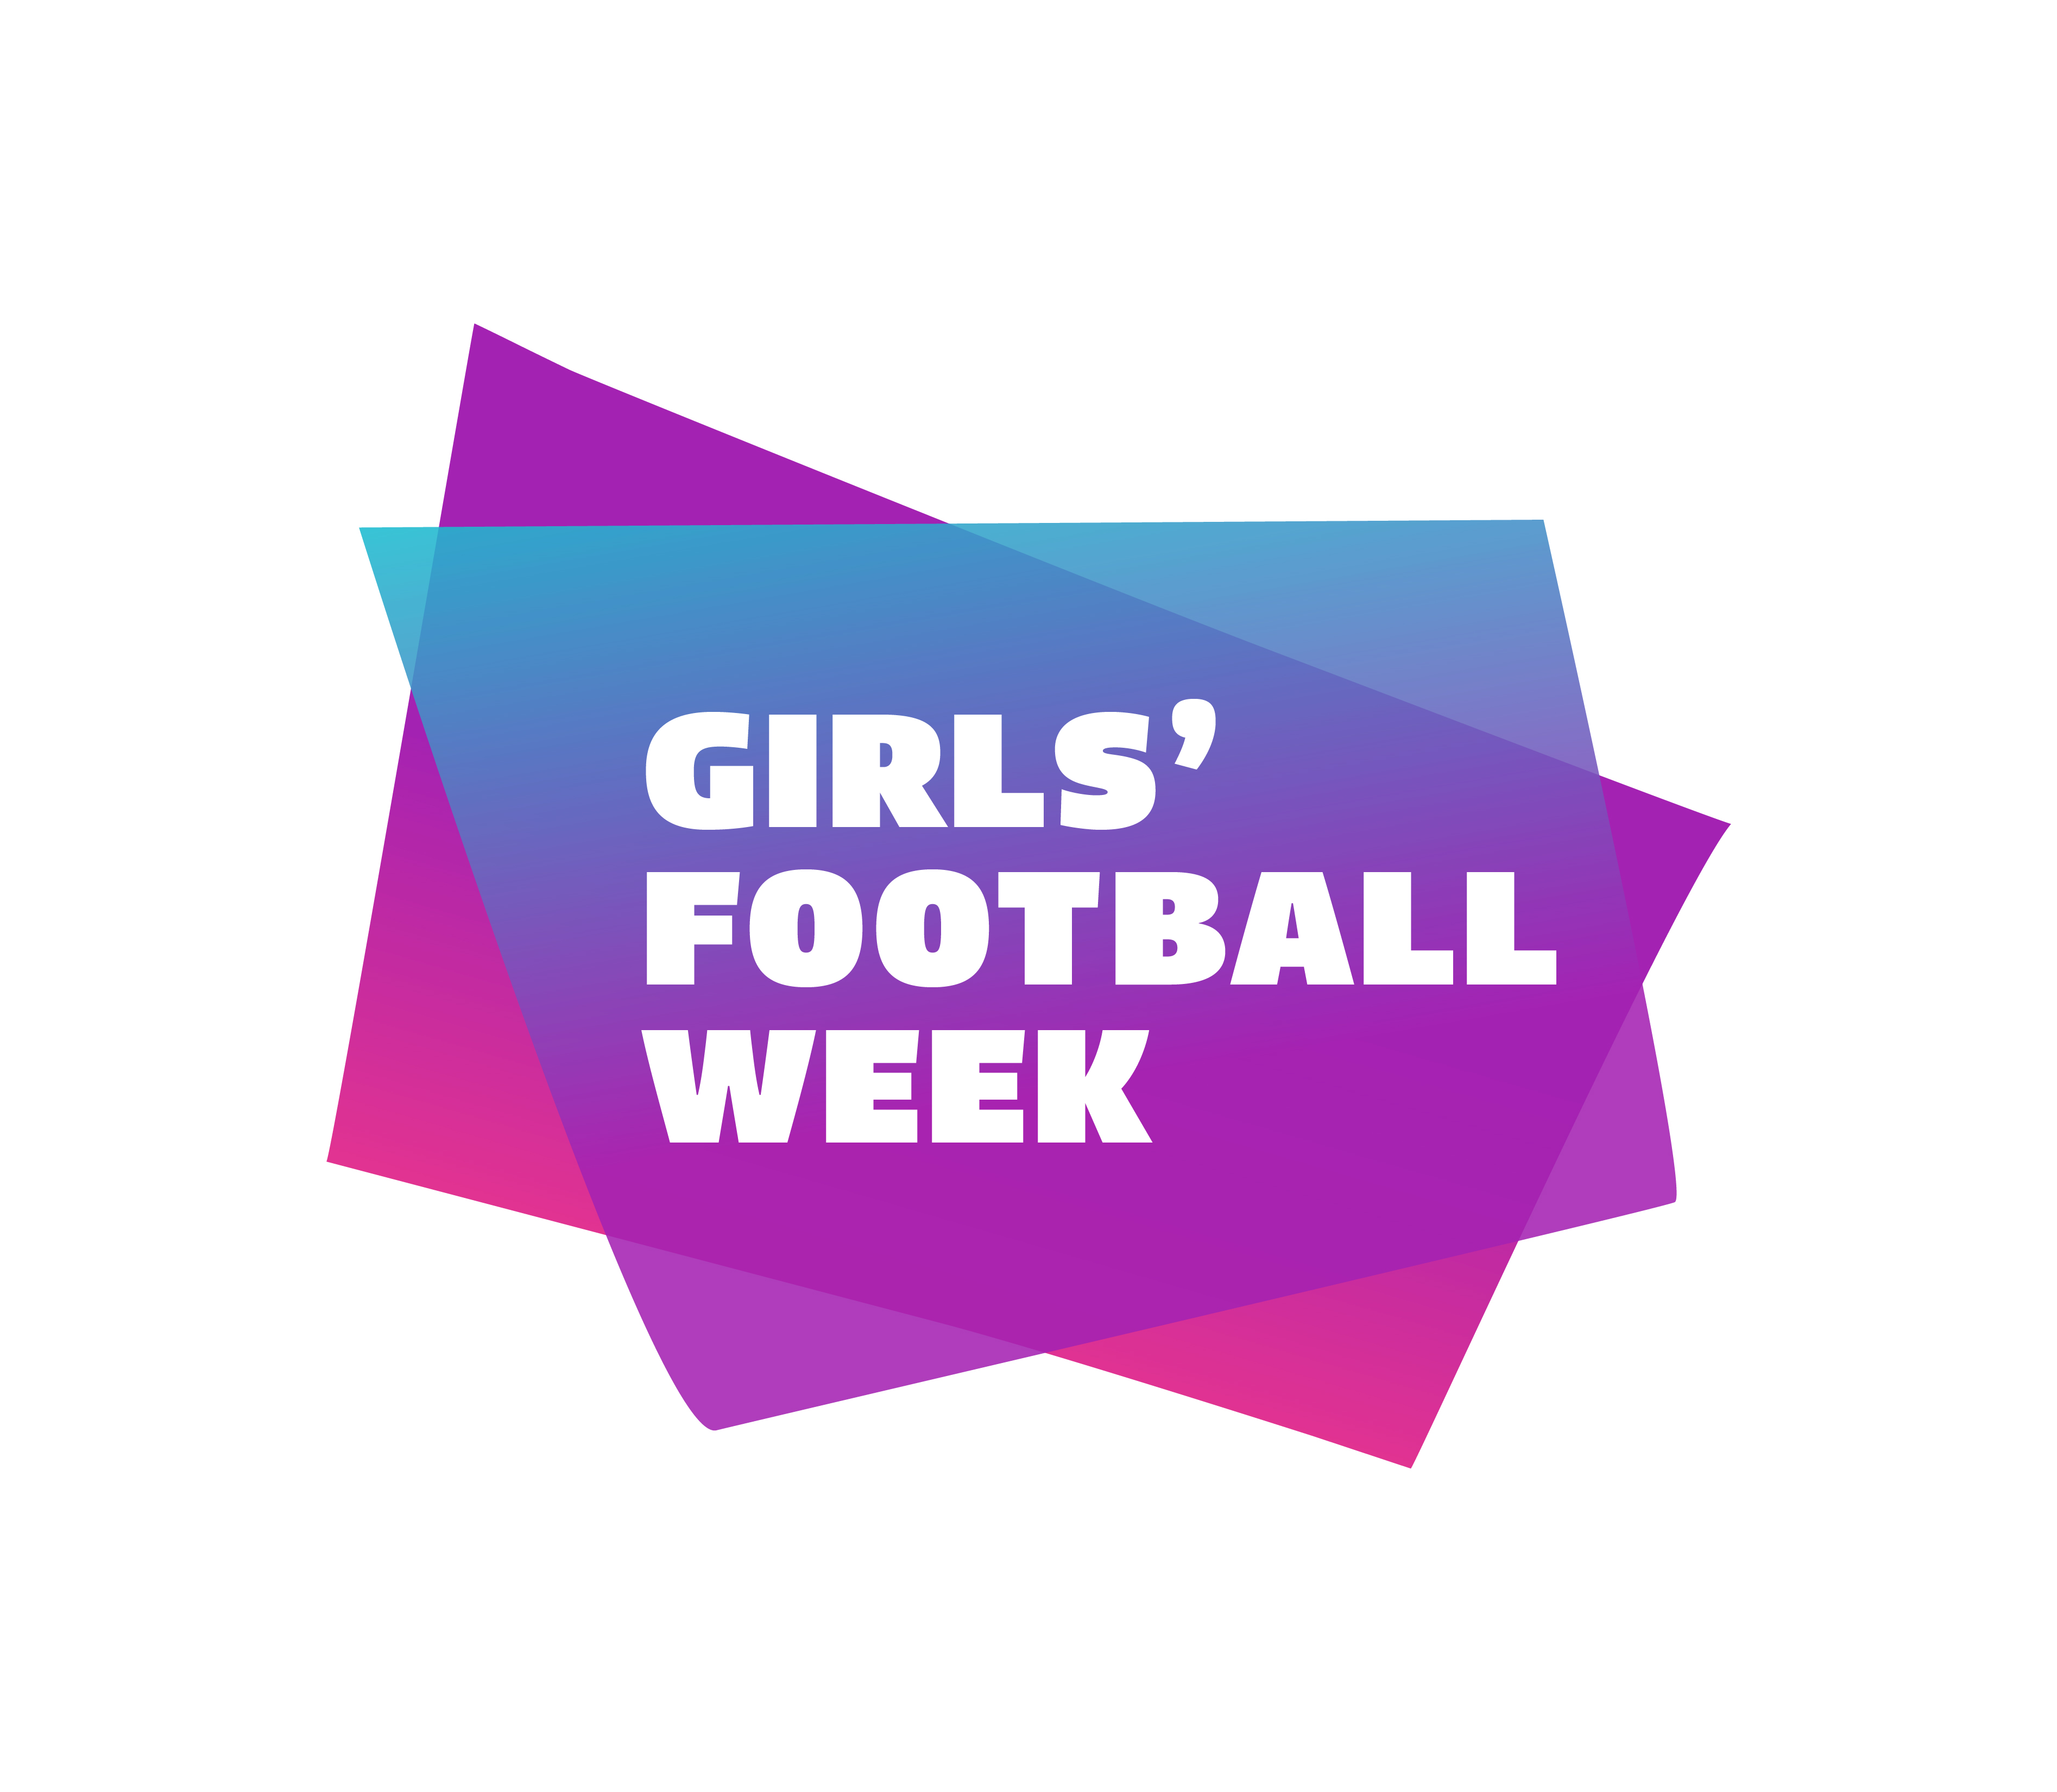 Girls Football Week